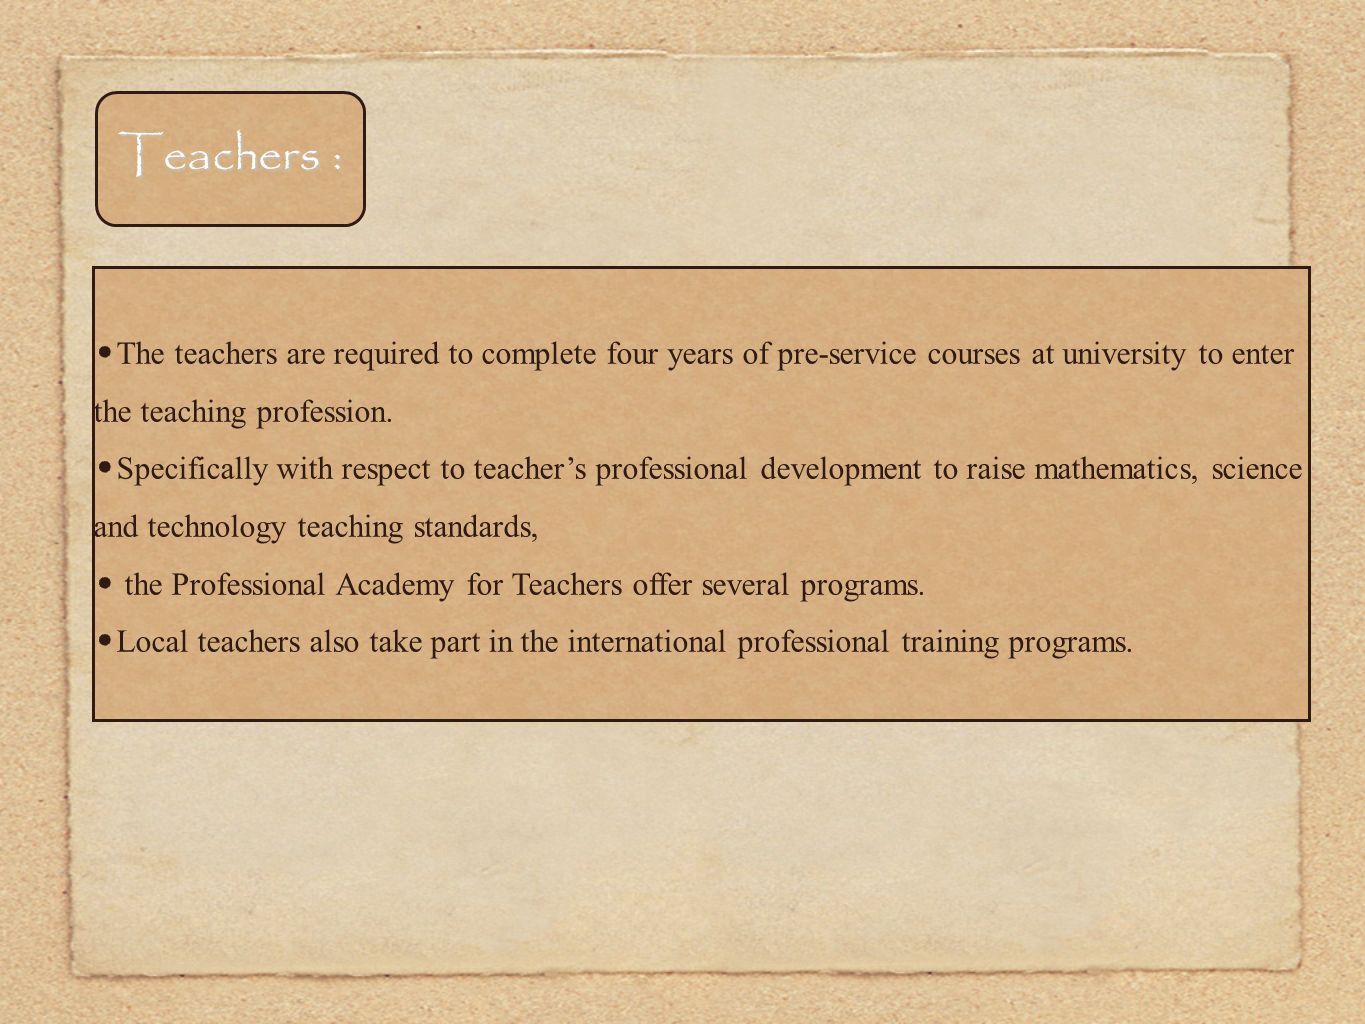 Teachers : The teachers are required to complete four years of pre-service courses at university to enter the teaching profession.